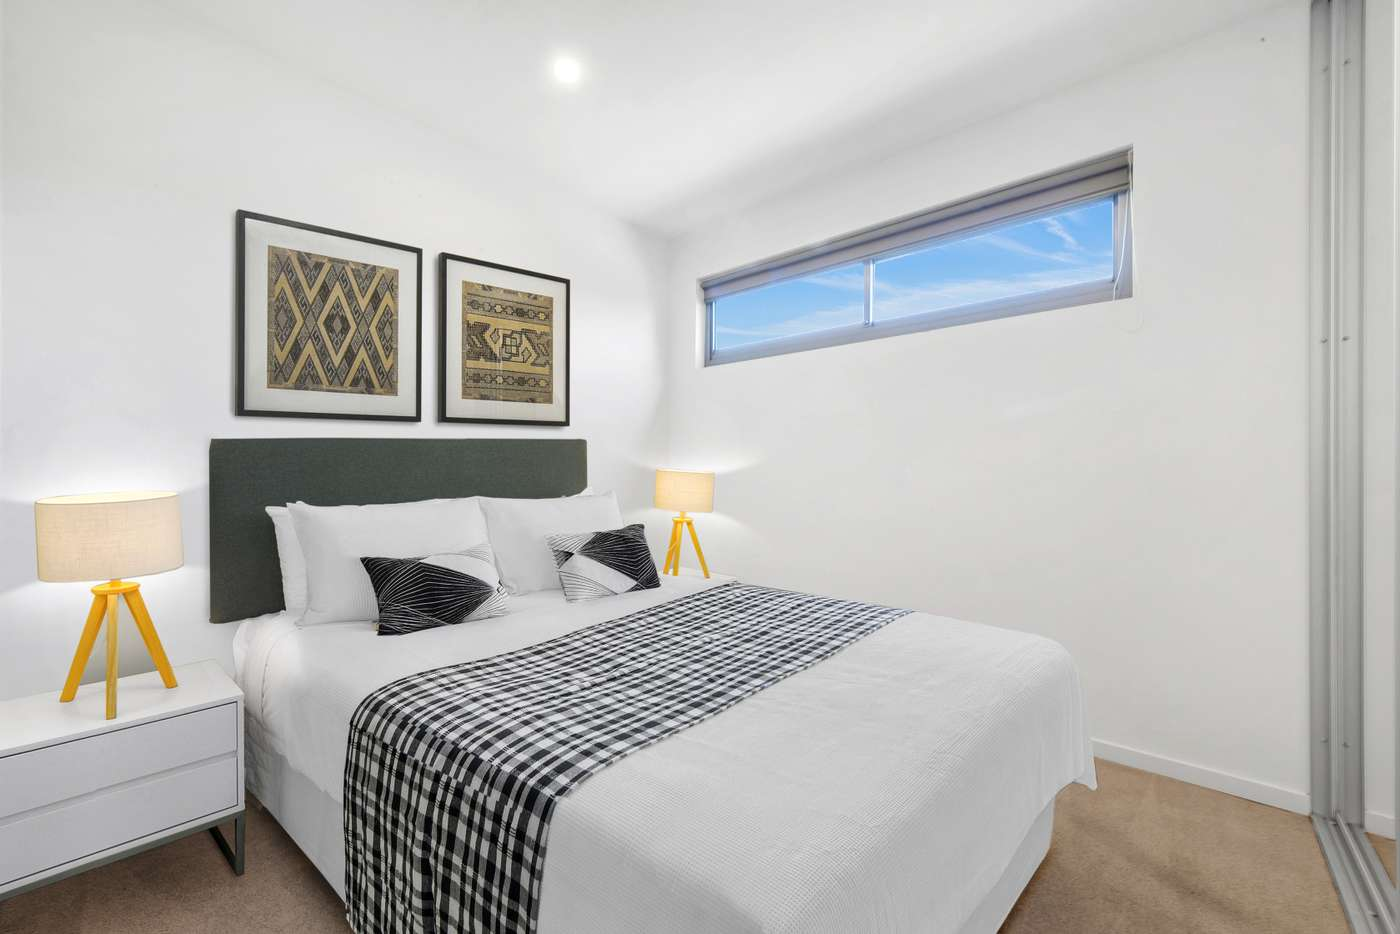 Sixth view of Homely apartment listing, 101/264 Waterdale Road, Ivanhoe VIC 3079